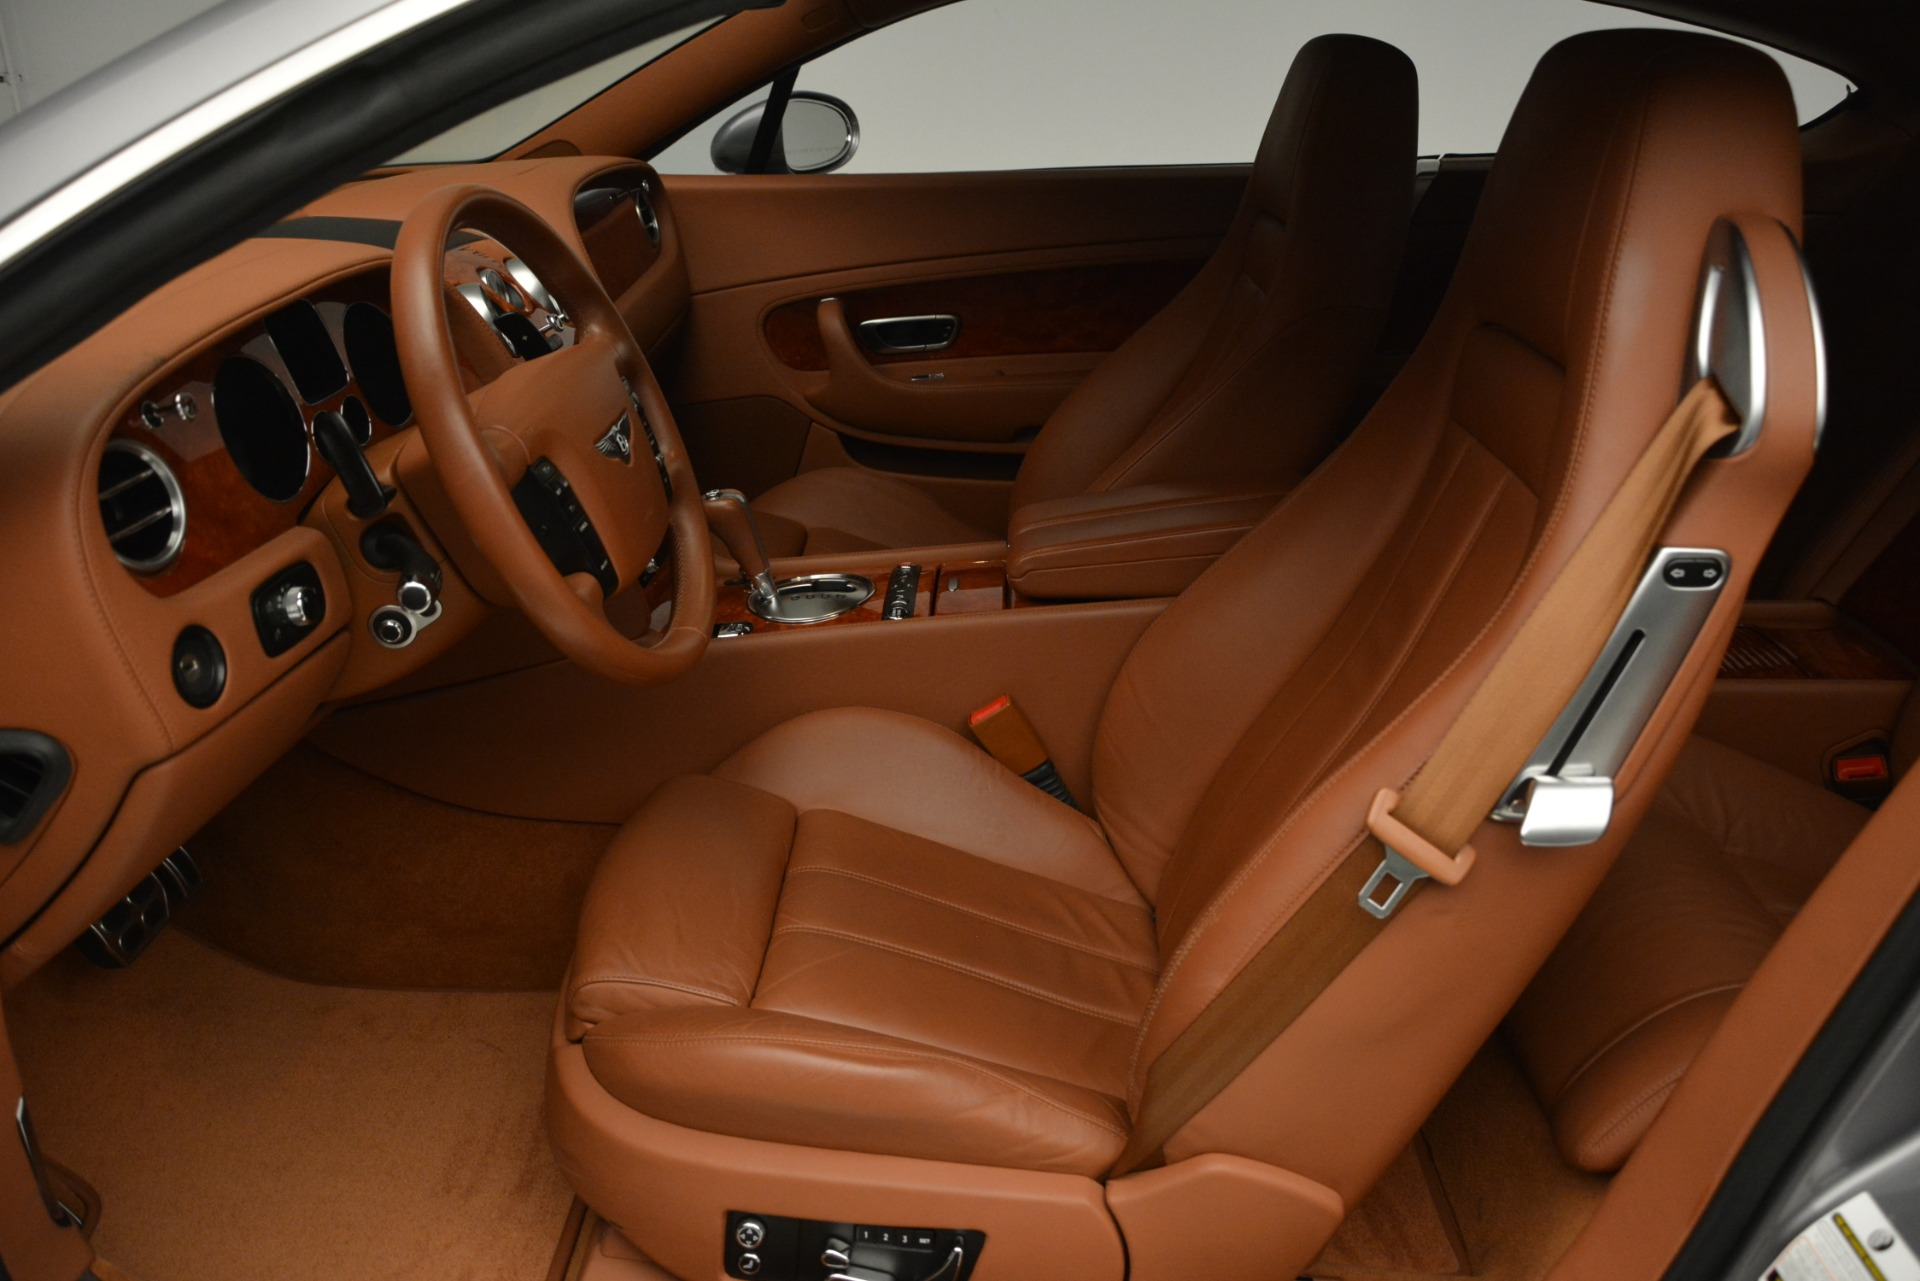 Used 2005 Bentley Continental GT GT Turbo For Sale In Westport, CT 2726_p18